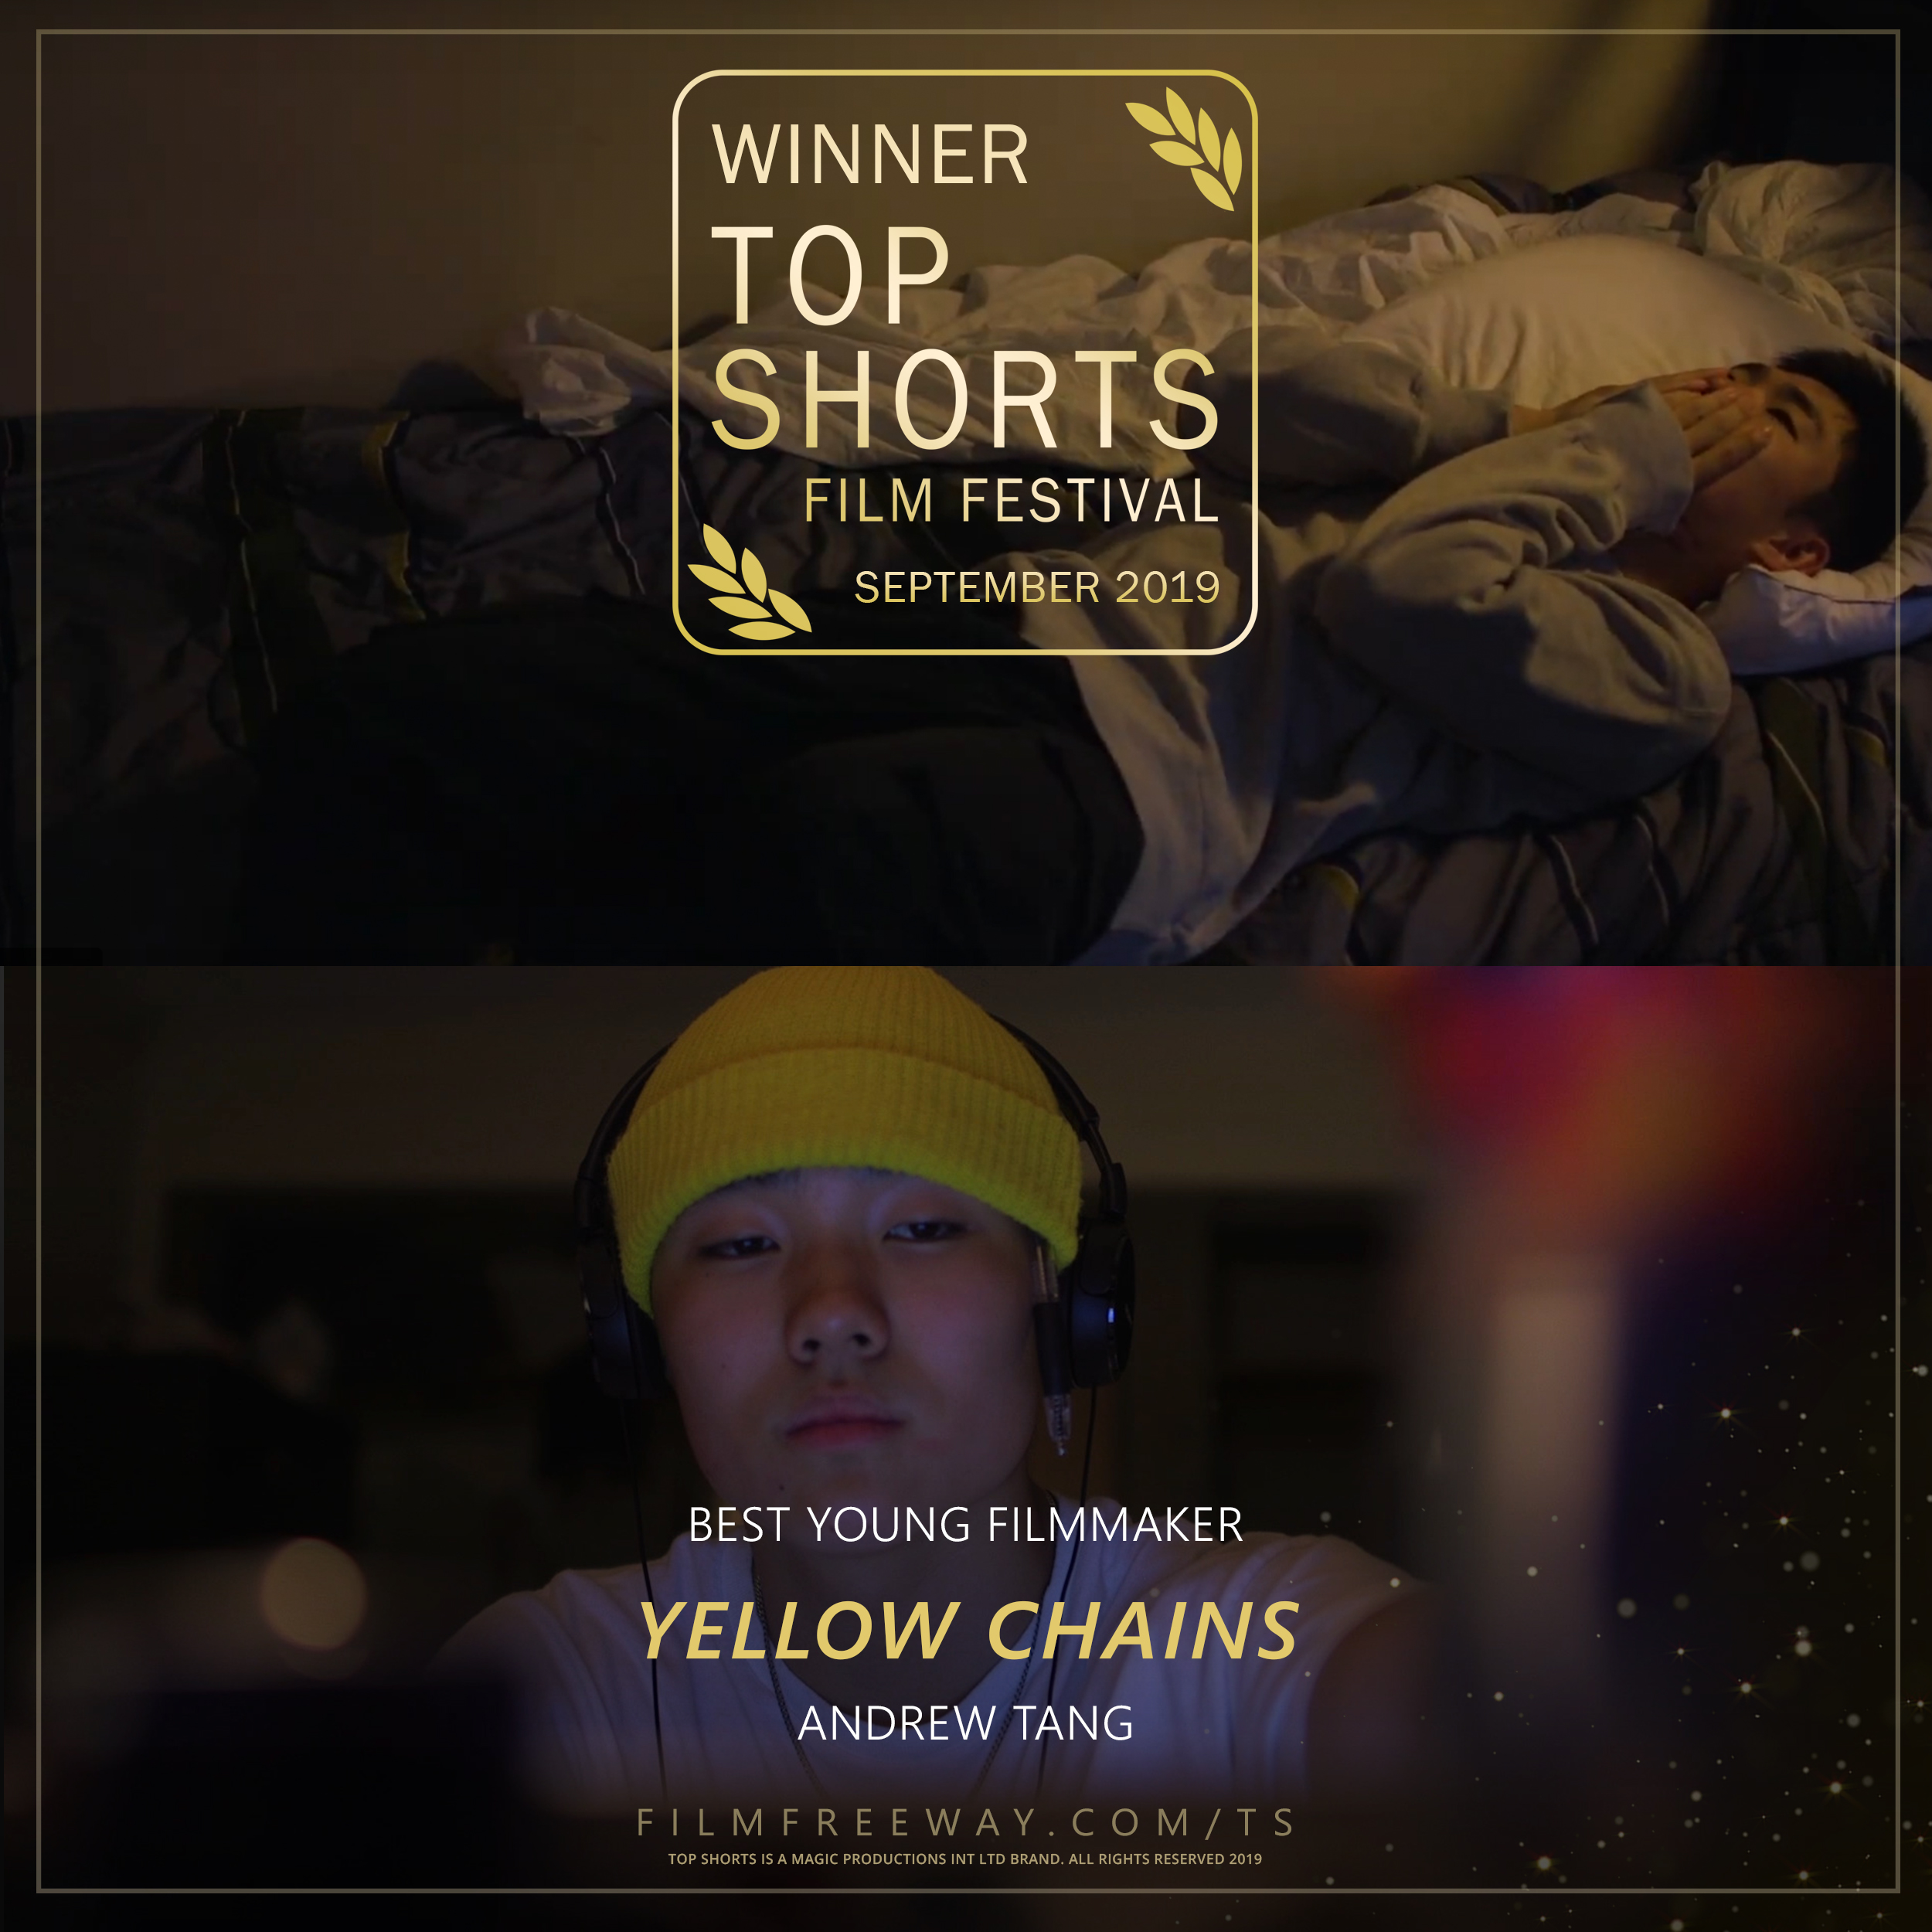 YELLOW CHAINS